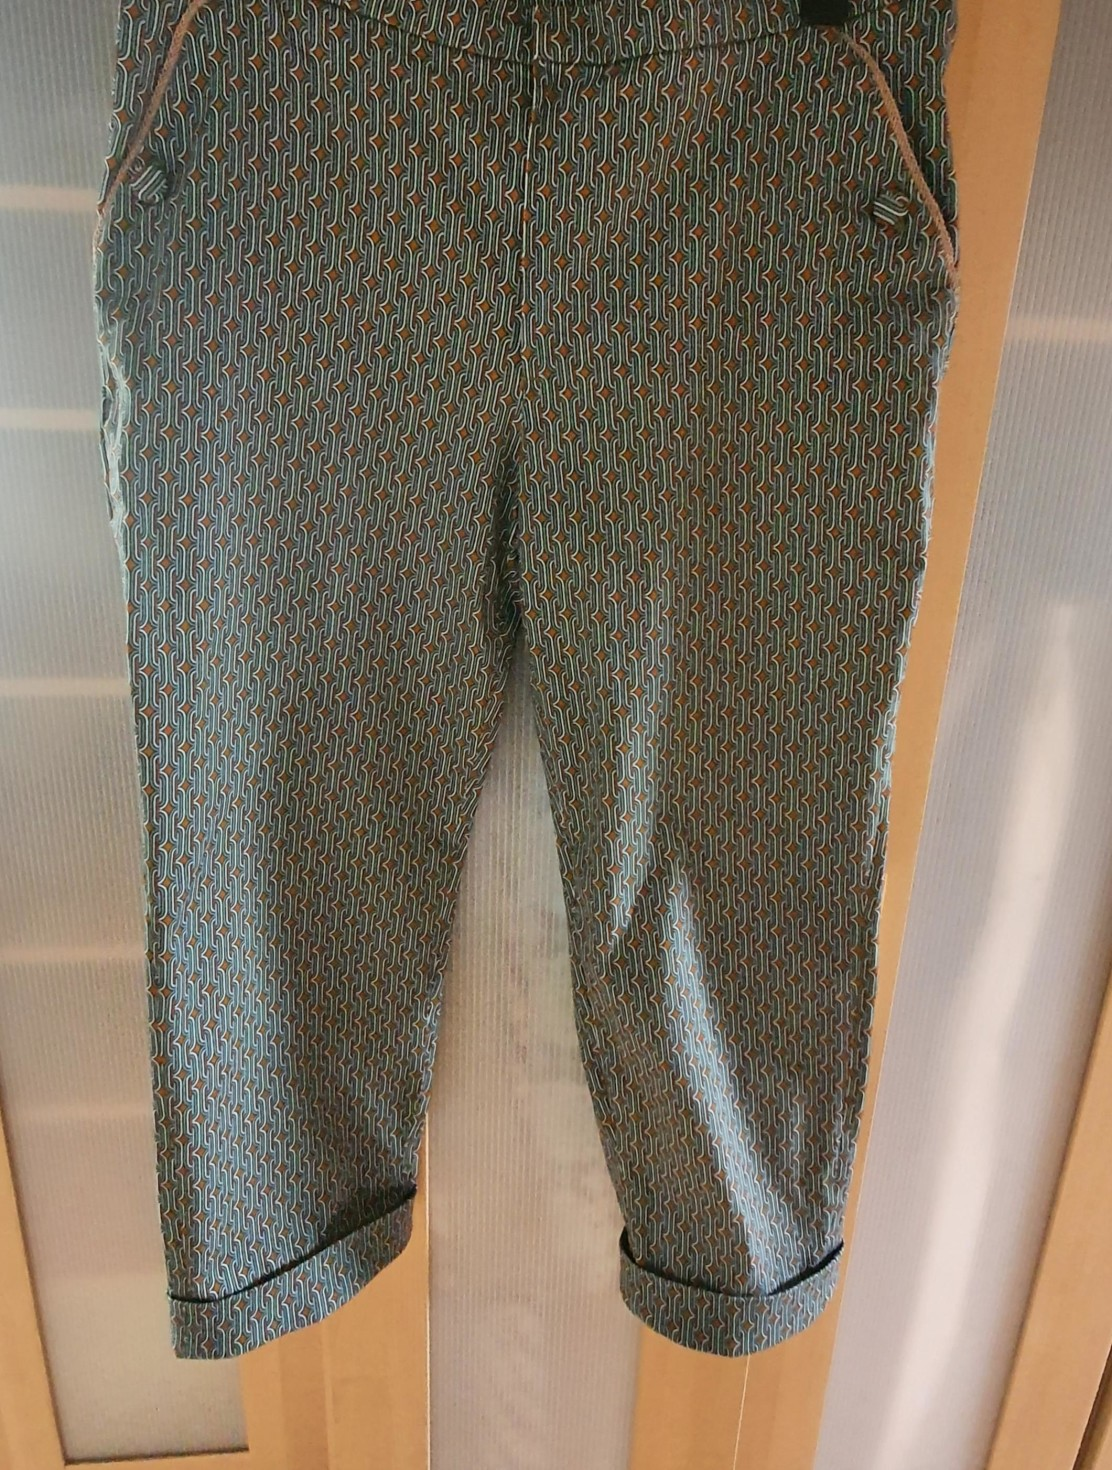 burda style Nutzerkreation hoschis4 Hose 106aus Burda 08/2020 aus Originalstoff